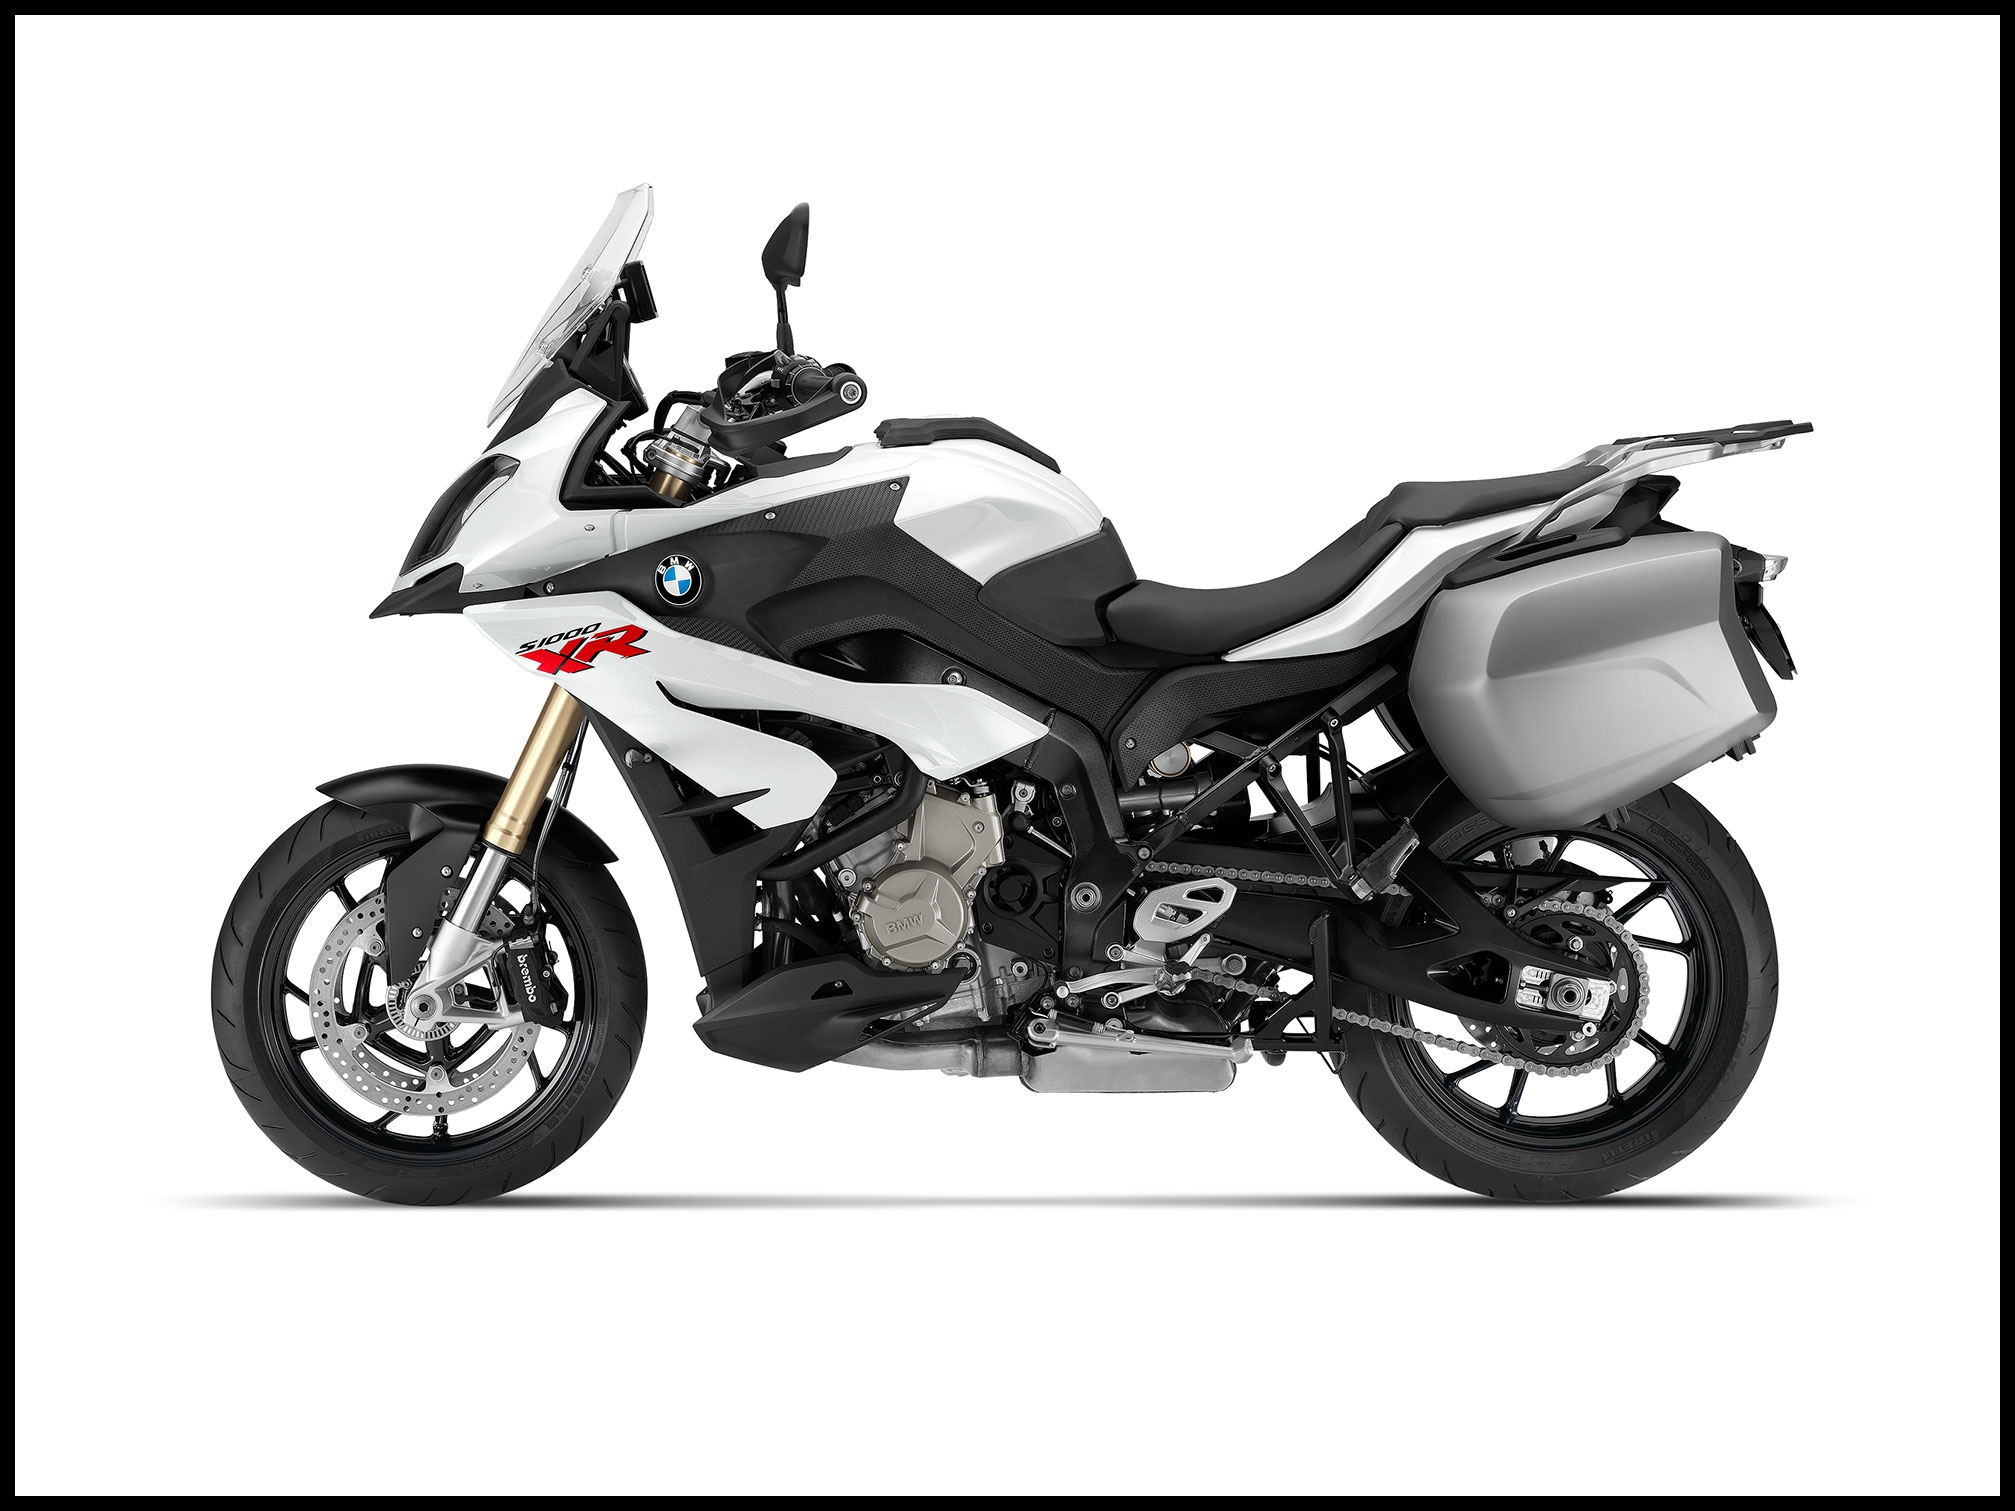 BMW Motorrad soars to new heights in 2015